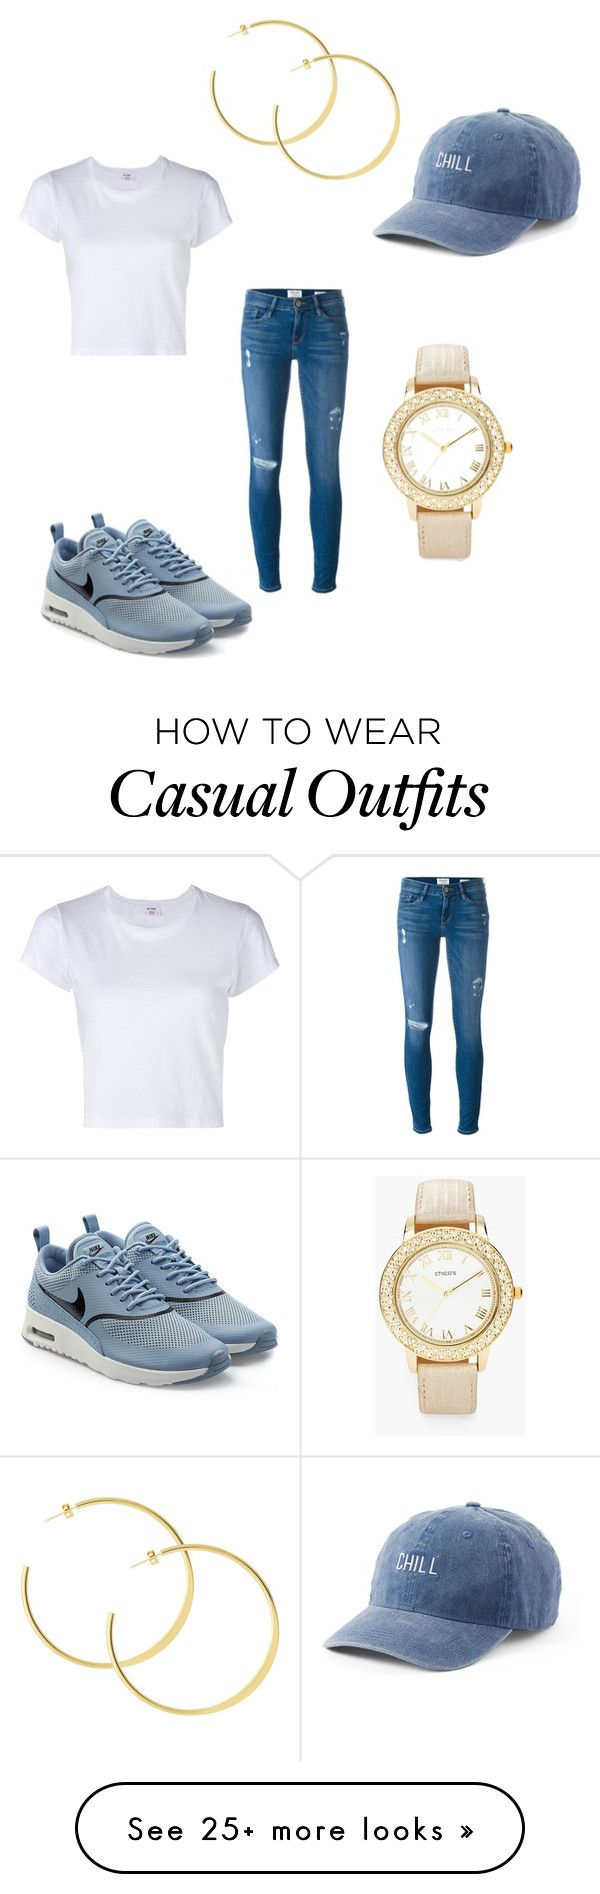 """""""Casually Chillin'"""" by tainasanchez on Polyvore featuring Frame, RE/DONE, SO, NIKE and Chico's"""